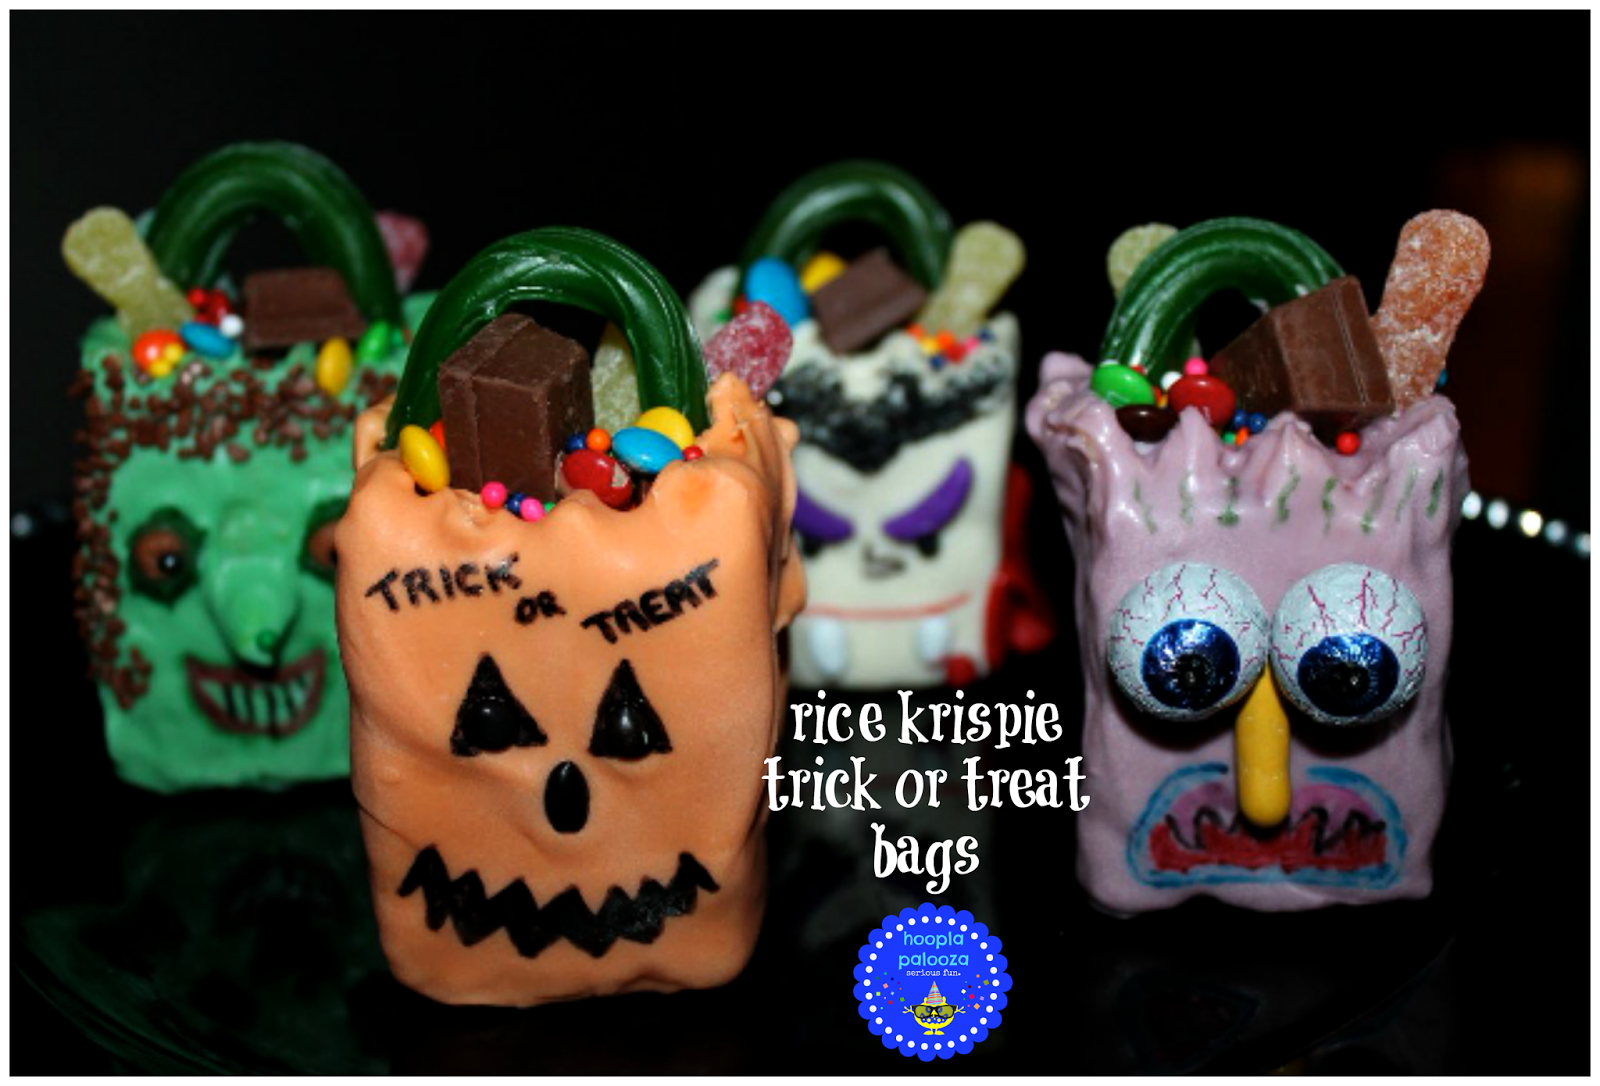 19-rice-krispie-trick-or-treat-bags-end-hooplapalooza